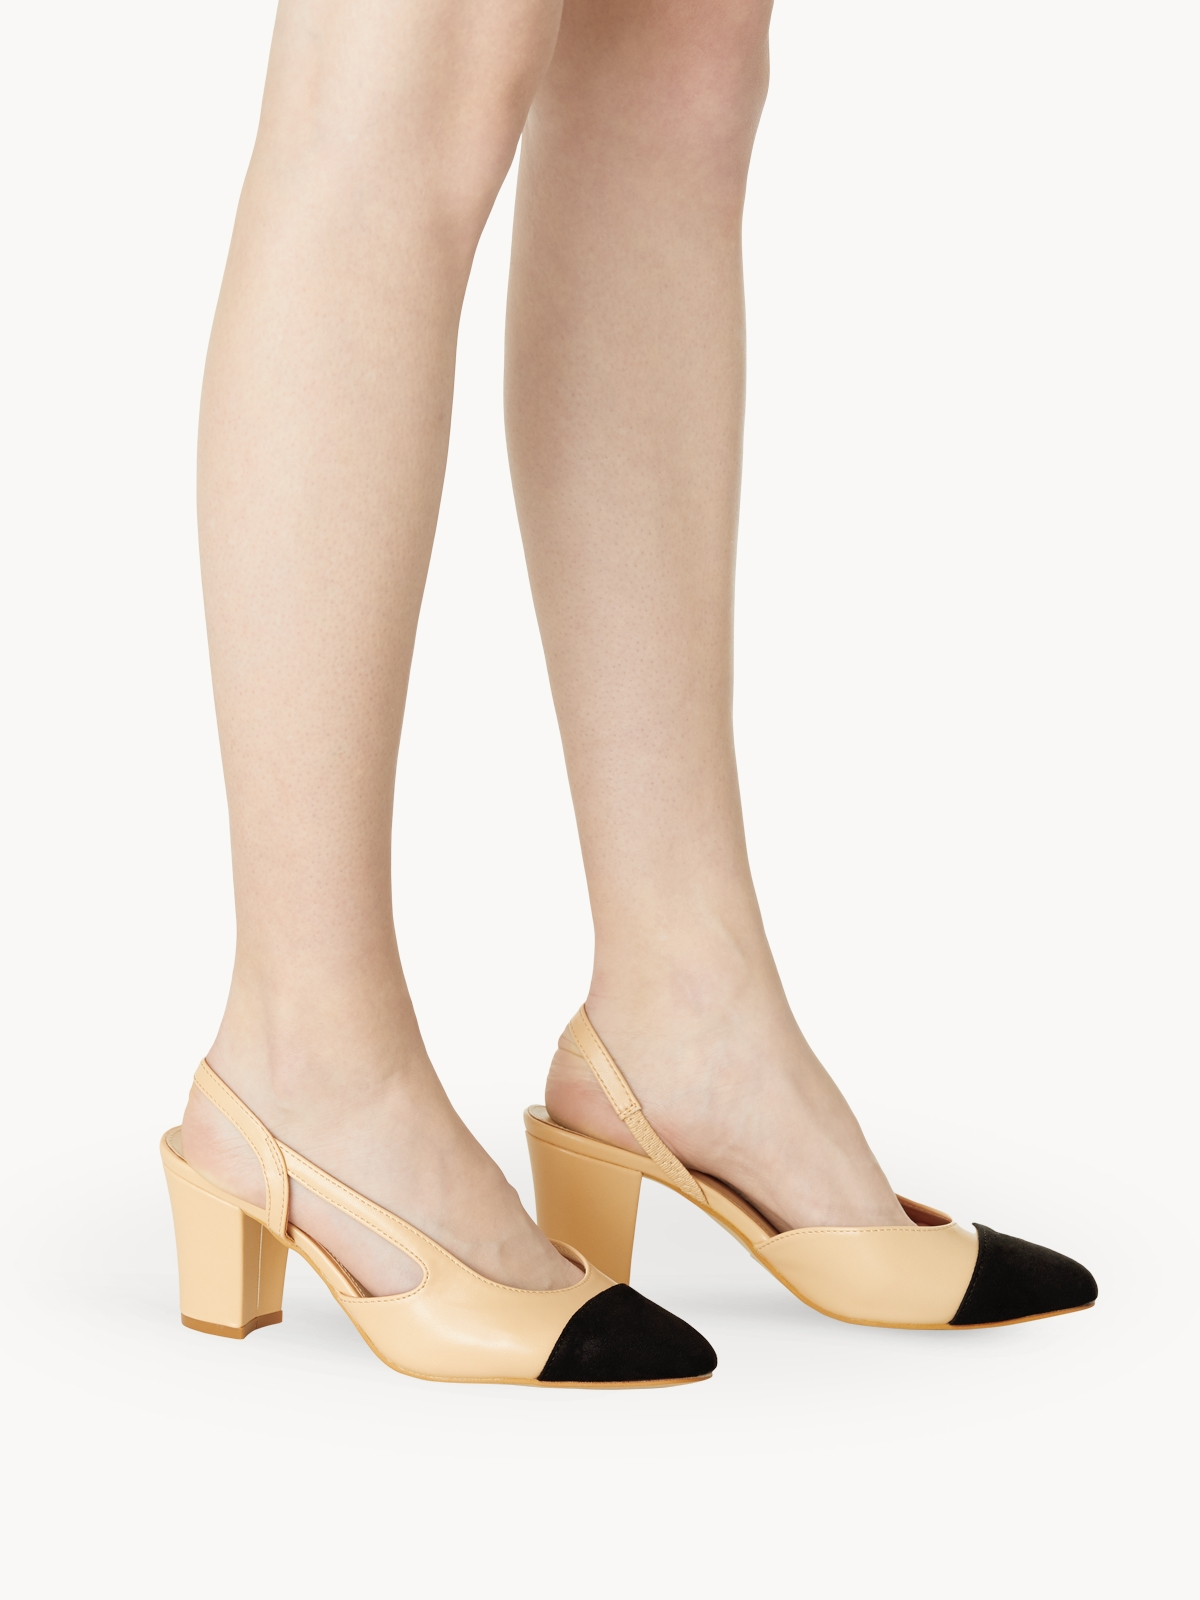 LootAt We Strap Mules Nude